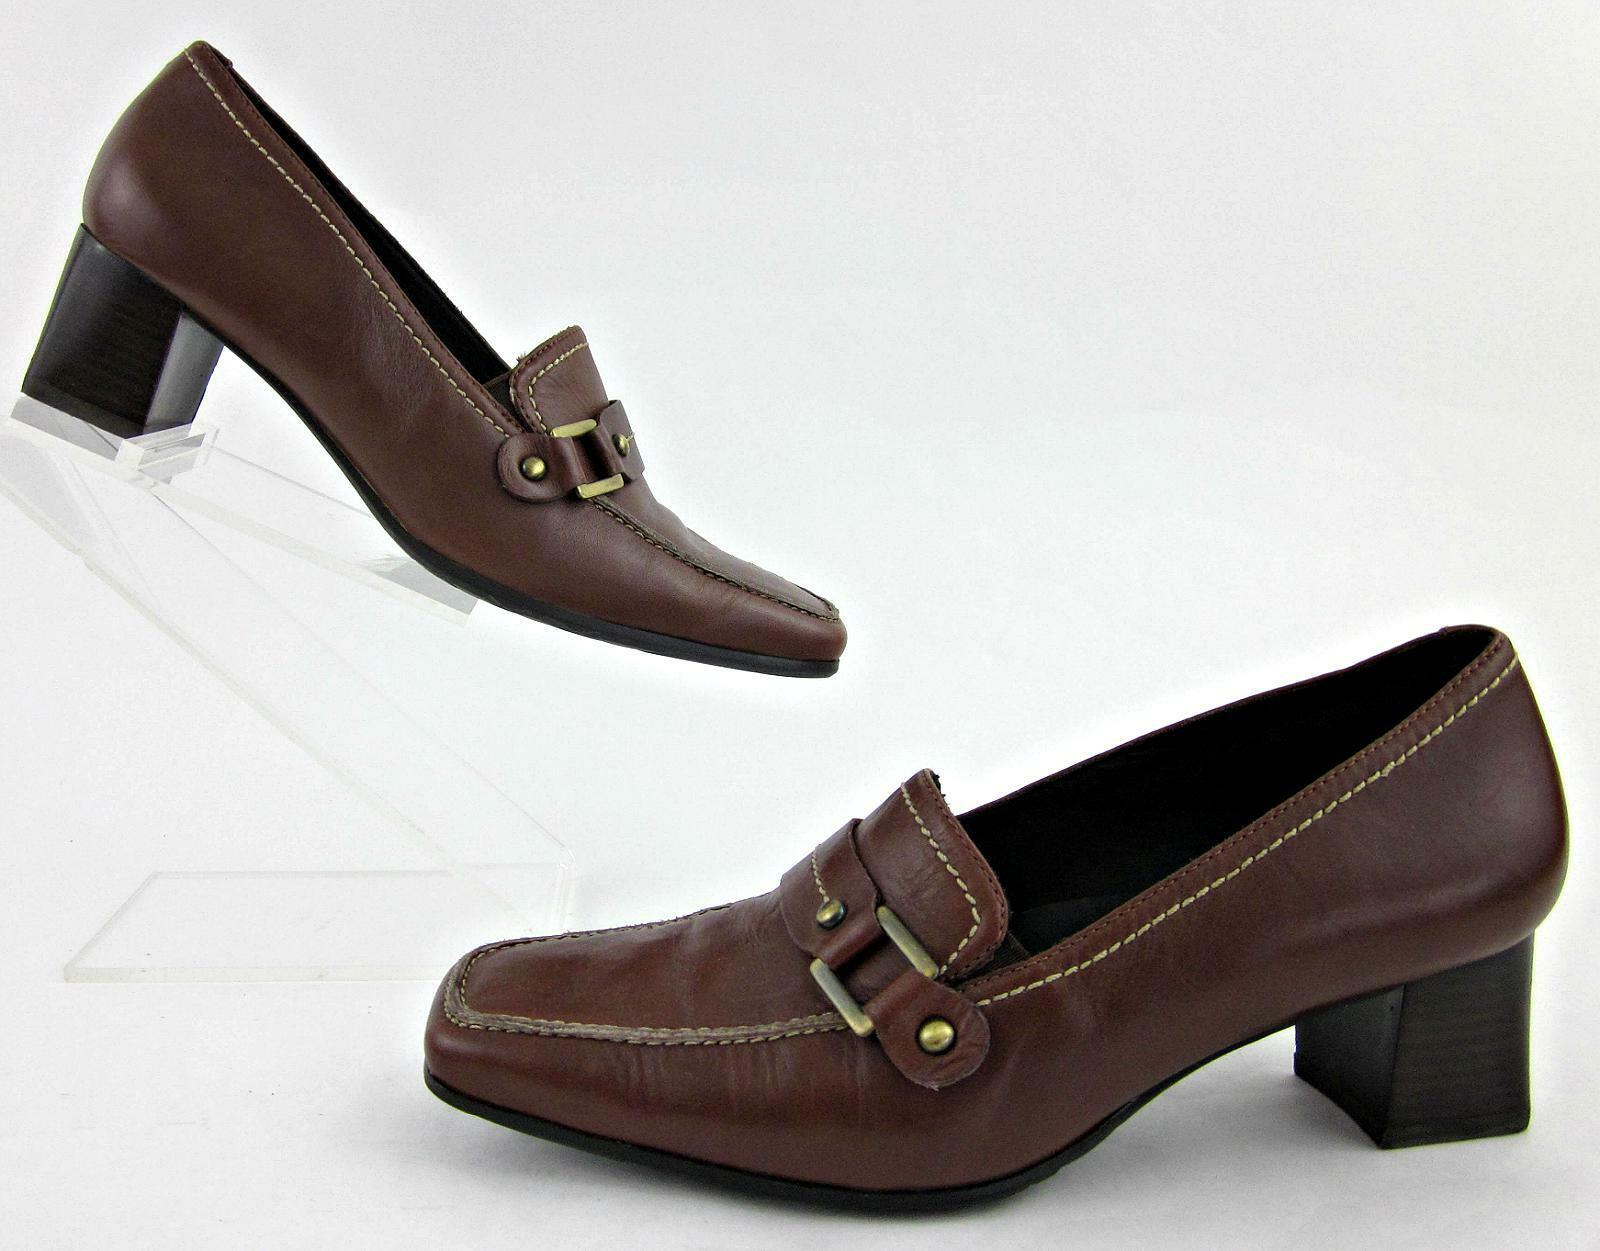 ECCO Moc Toe Low Slip Heel Slip Low On Shoes Brown Leather / US 6-6.5 81fea9